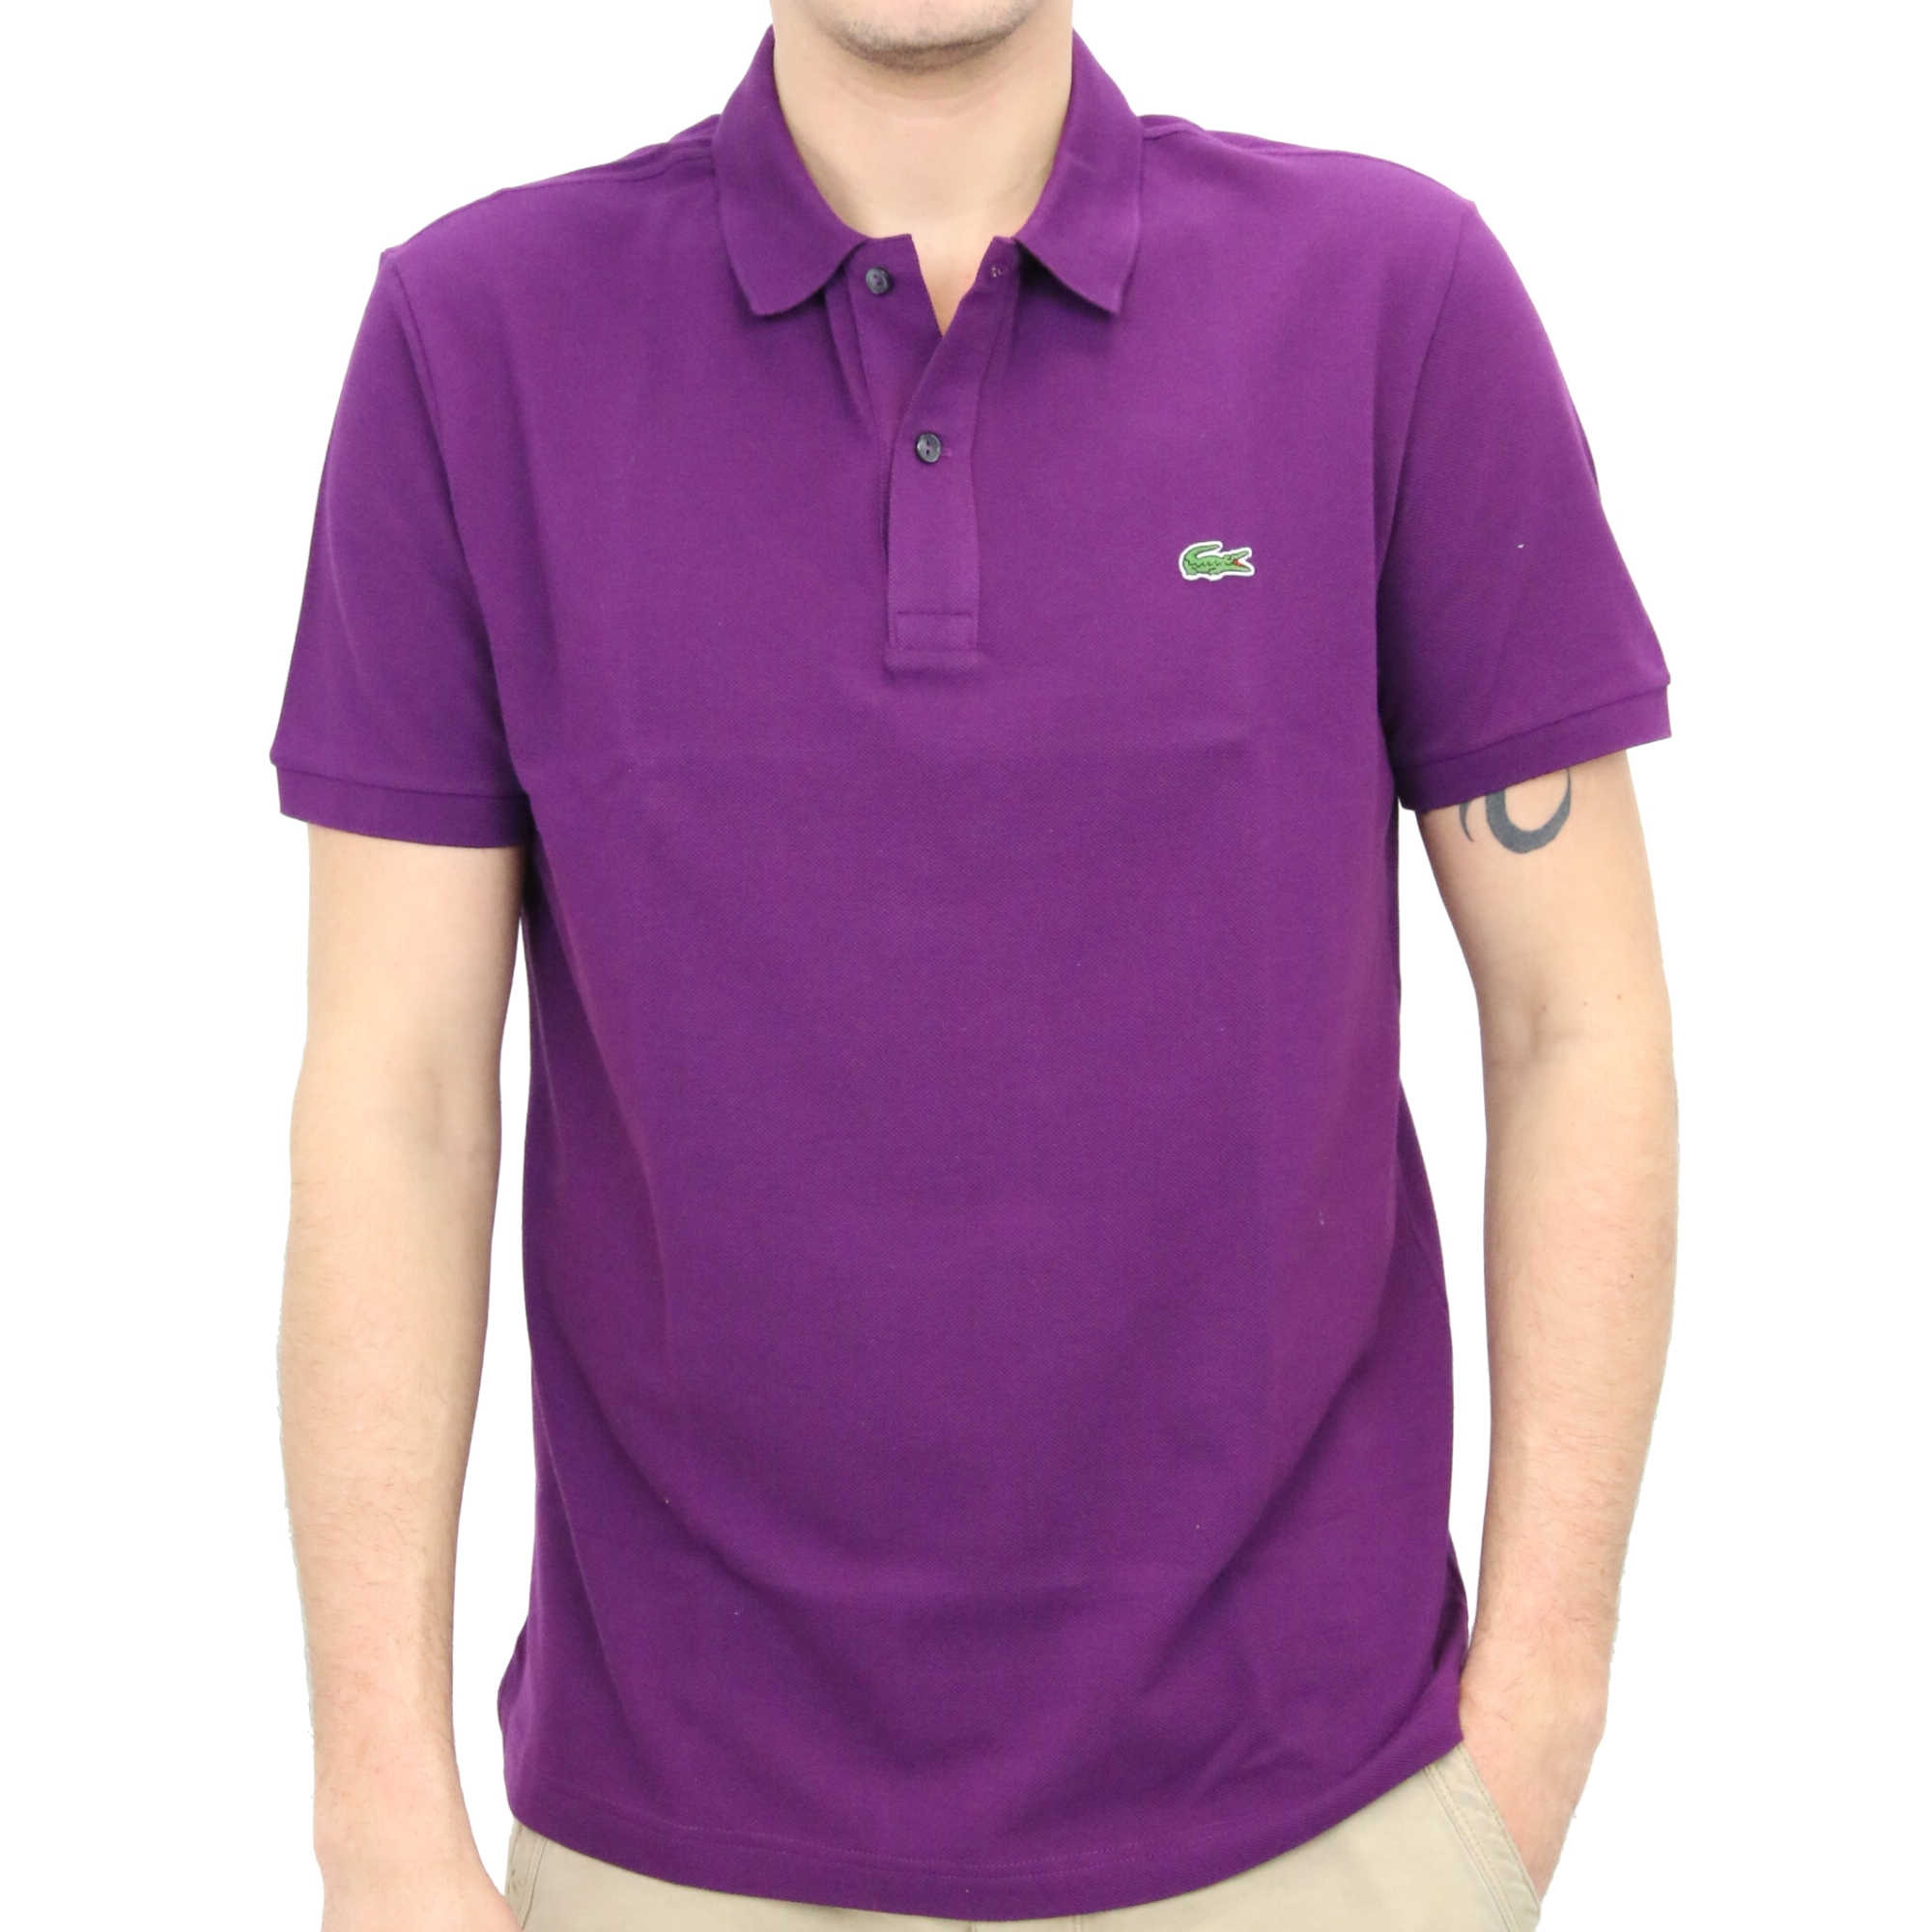 Lacoste slim fit polo shirt men 39 s ph4012 ebay for Lacoste polo shirts ebay